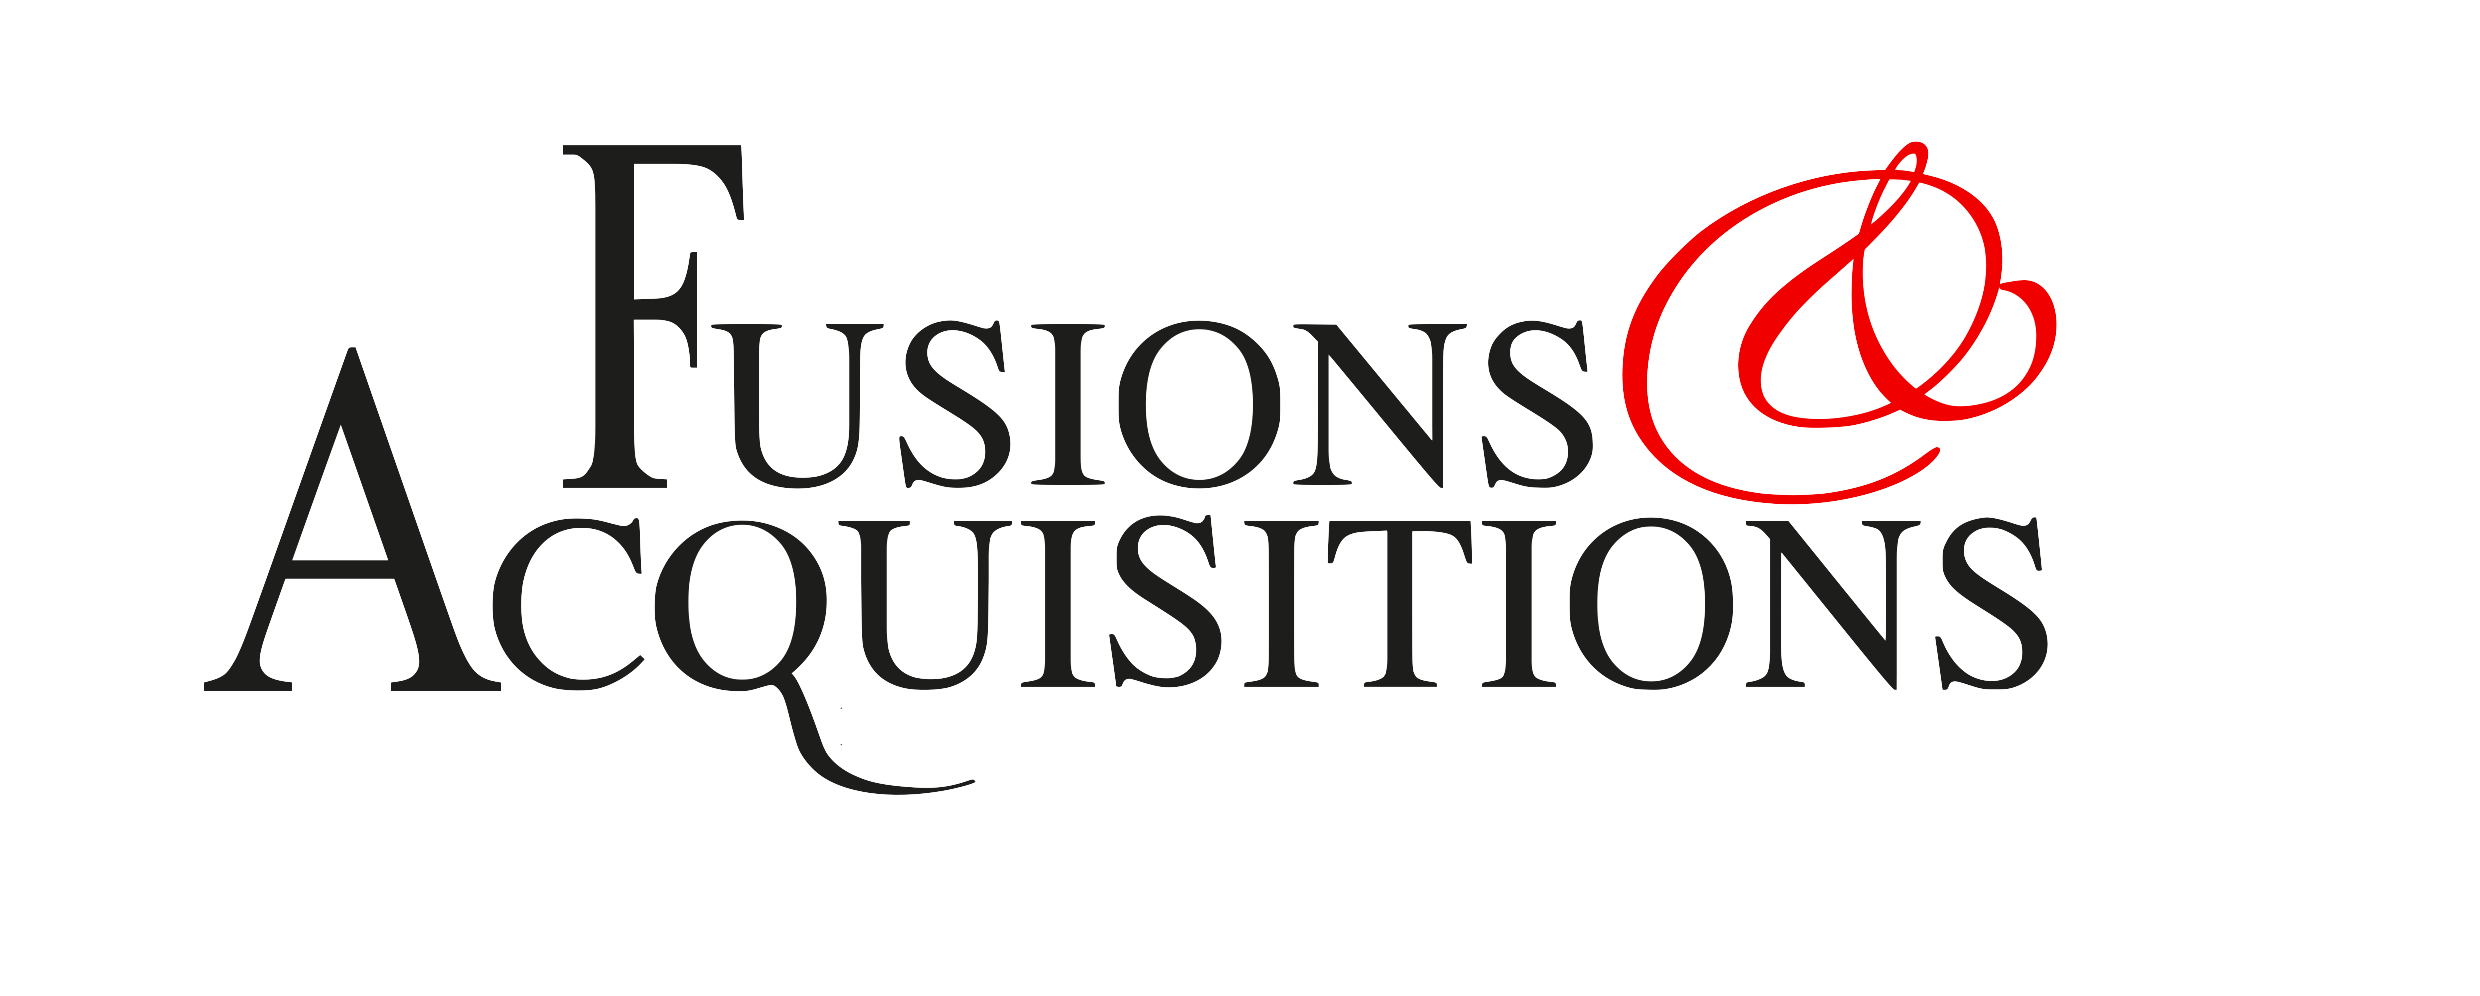 Fusions & Acquisitions Magazine